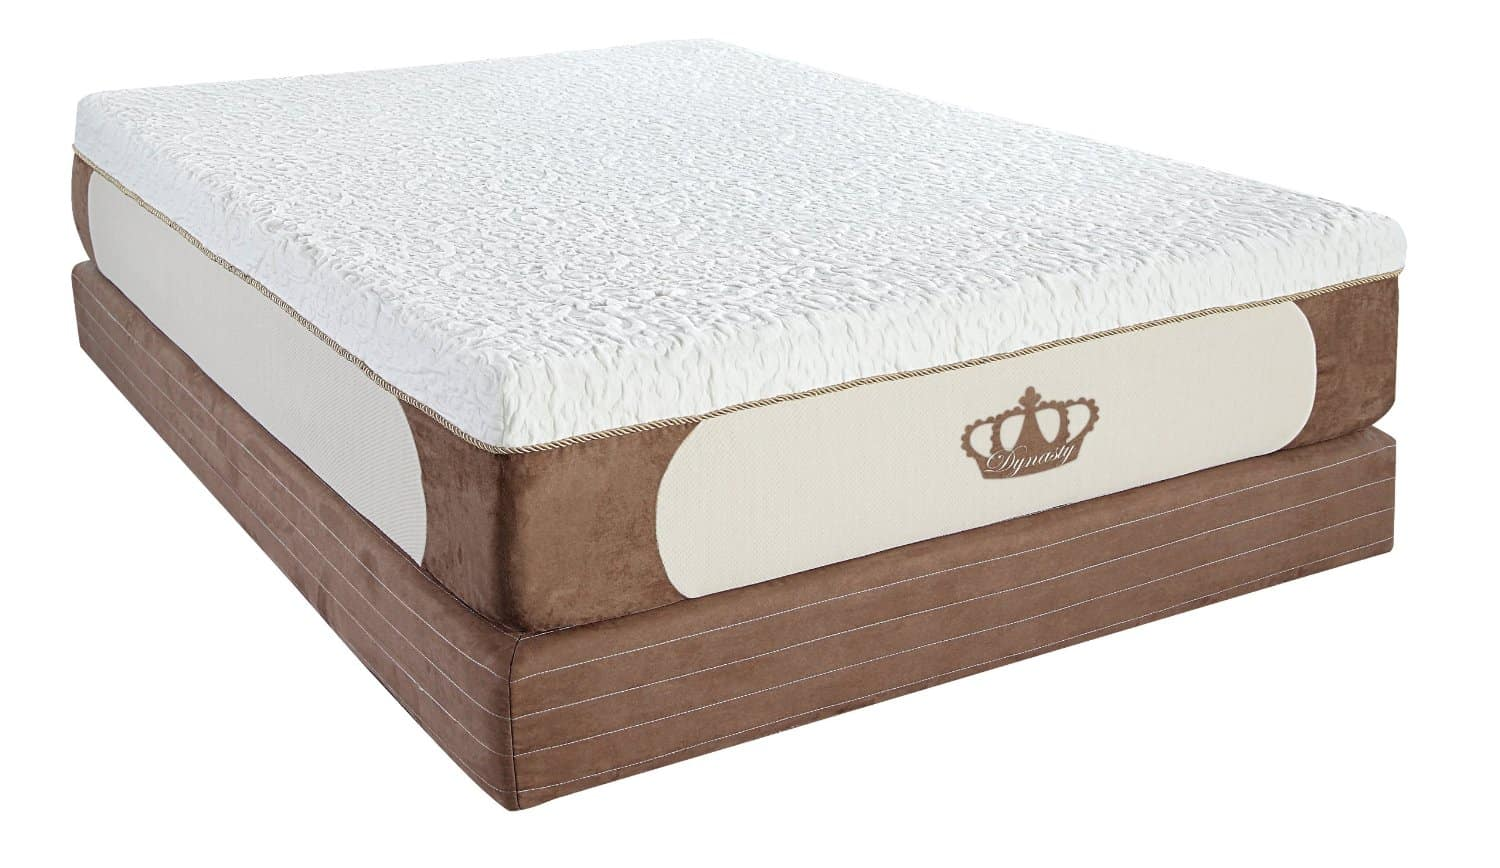 DynastyMattress New Cool Breeze 12 Inch Gel Memory Foam Mattress